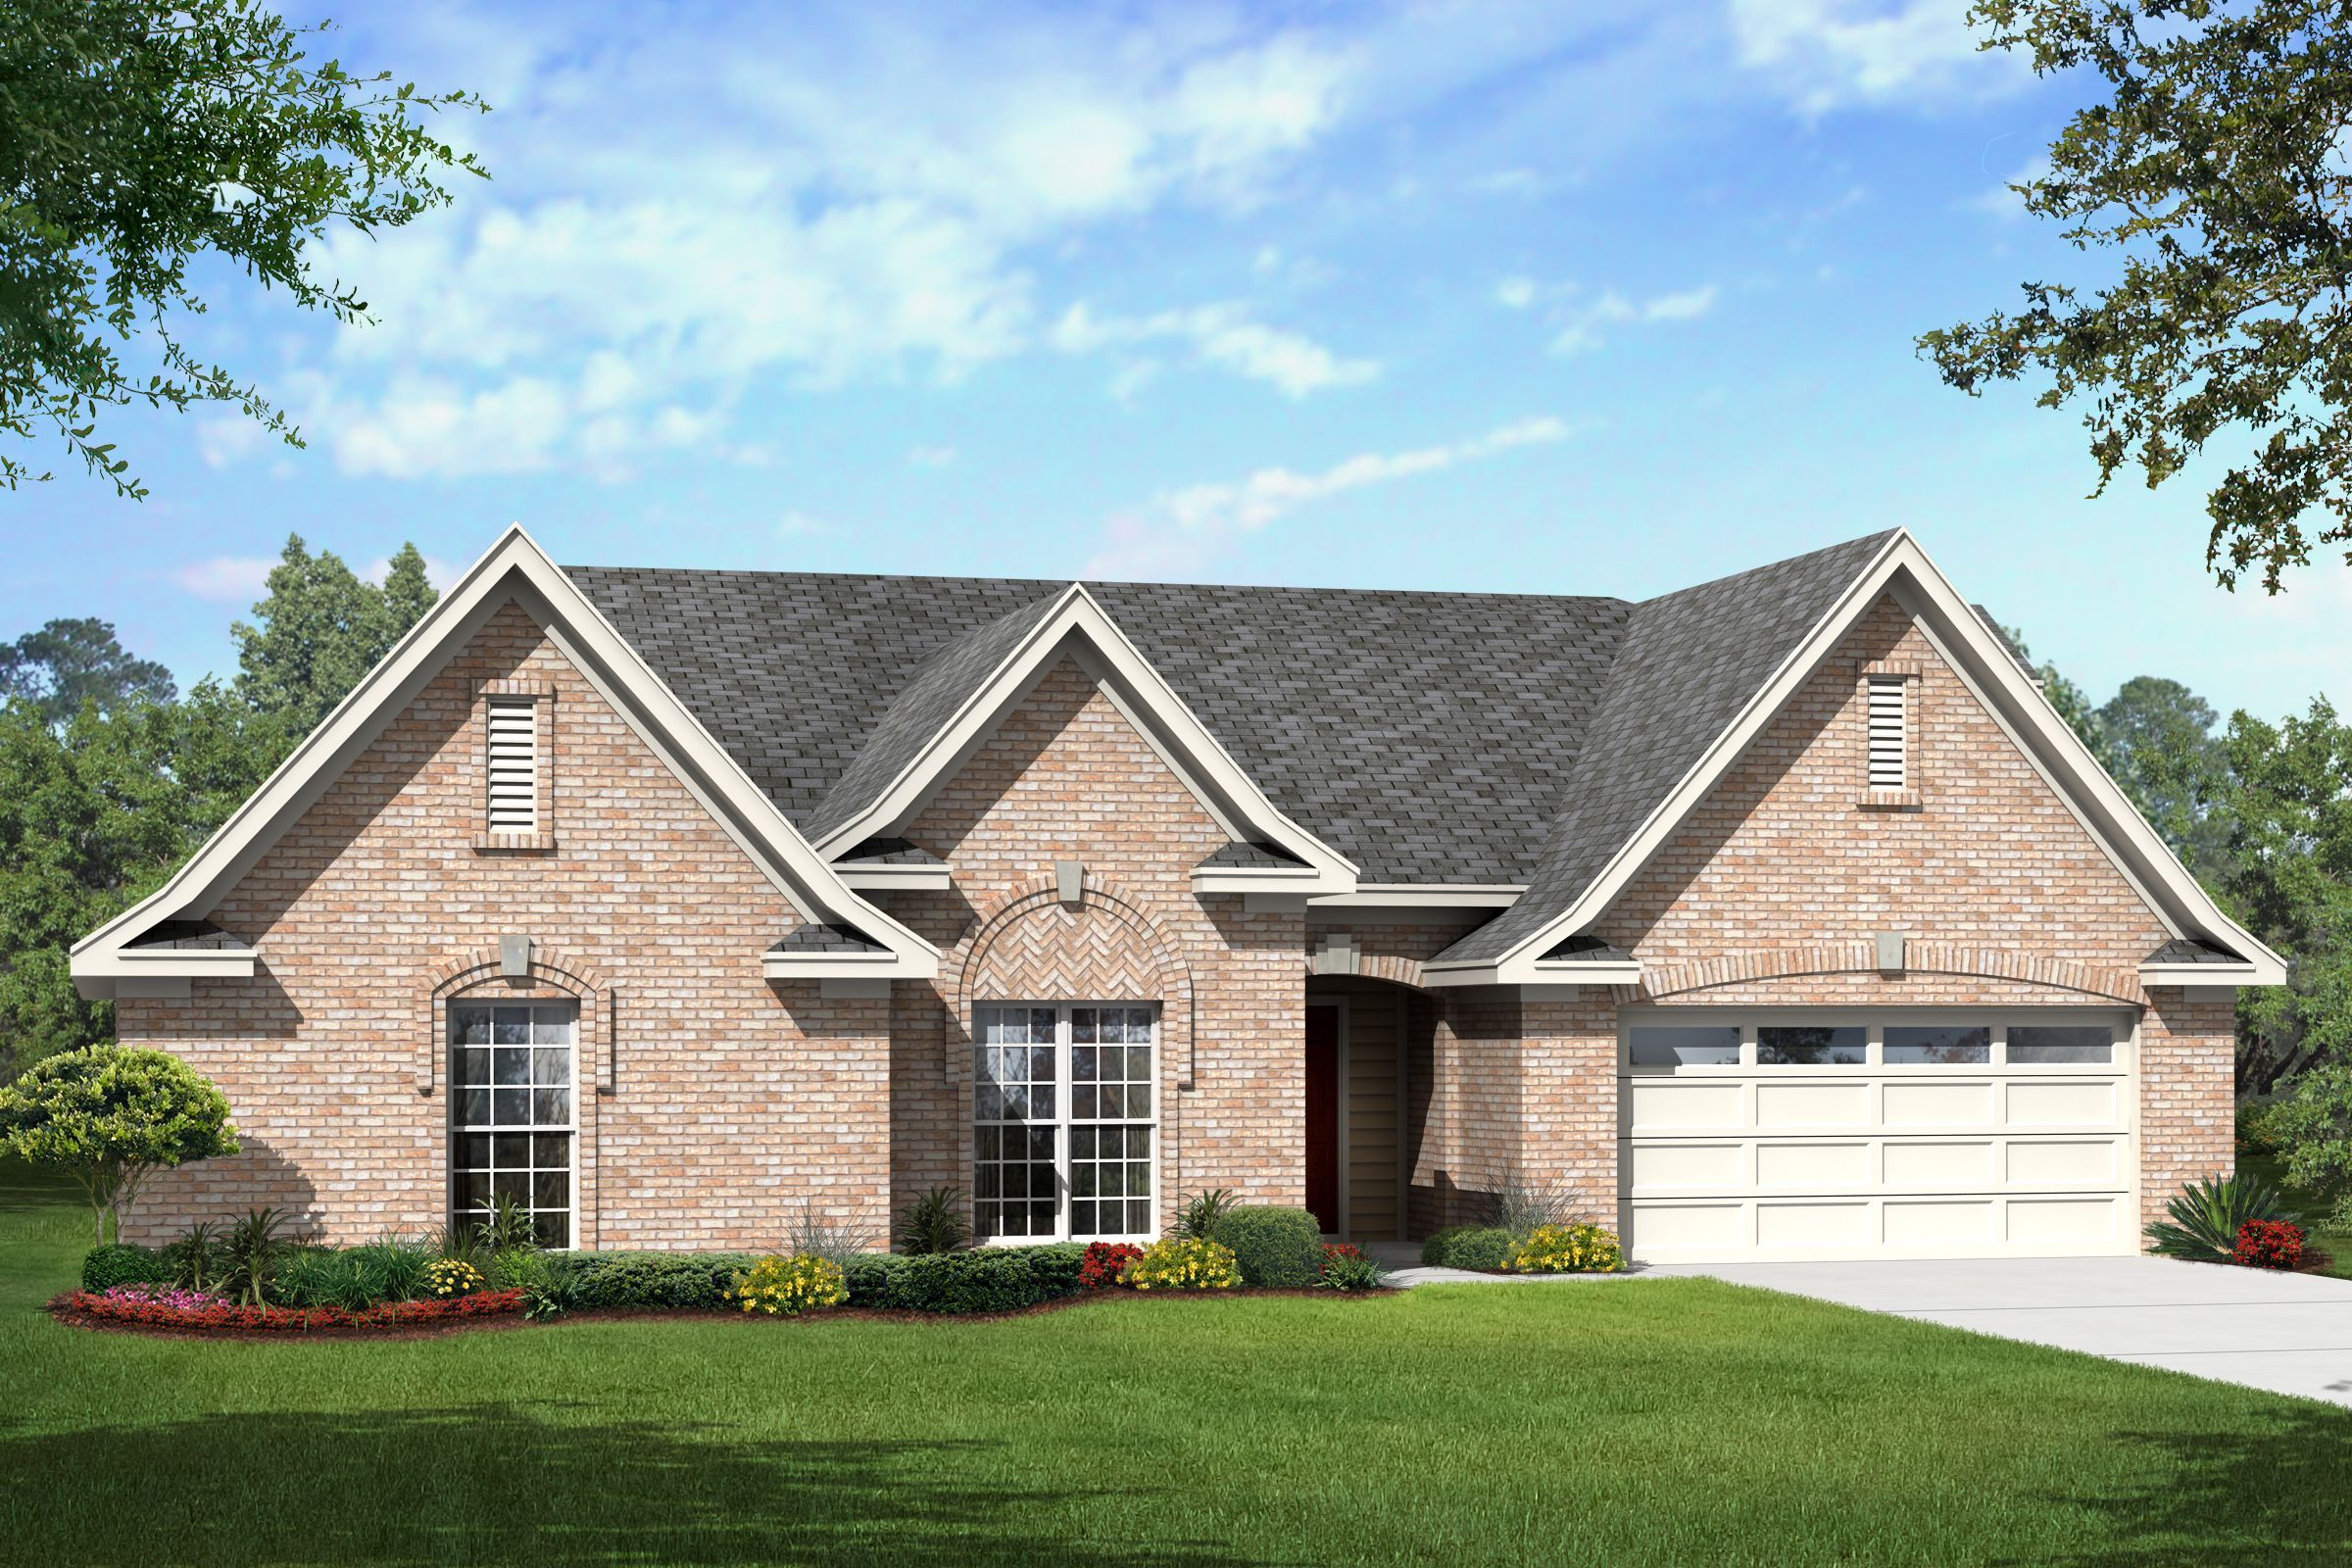 Elegant brick ranch home plan 68020hr 1st floor master for Brick ranch house plans